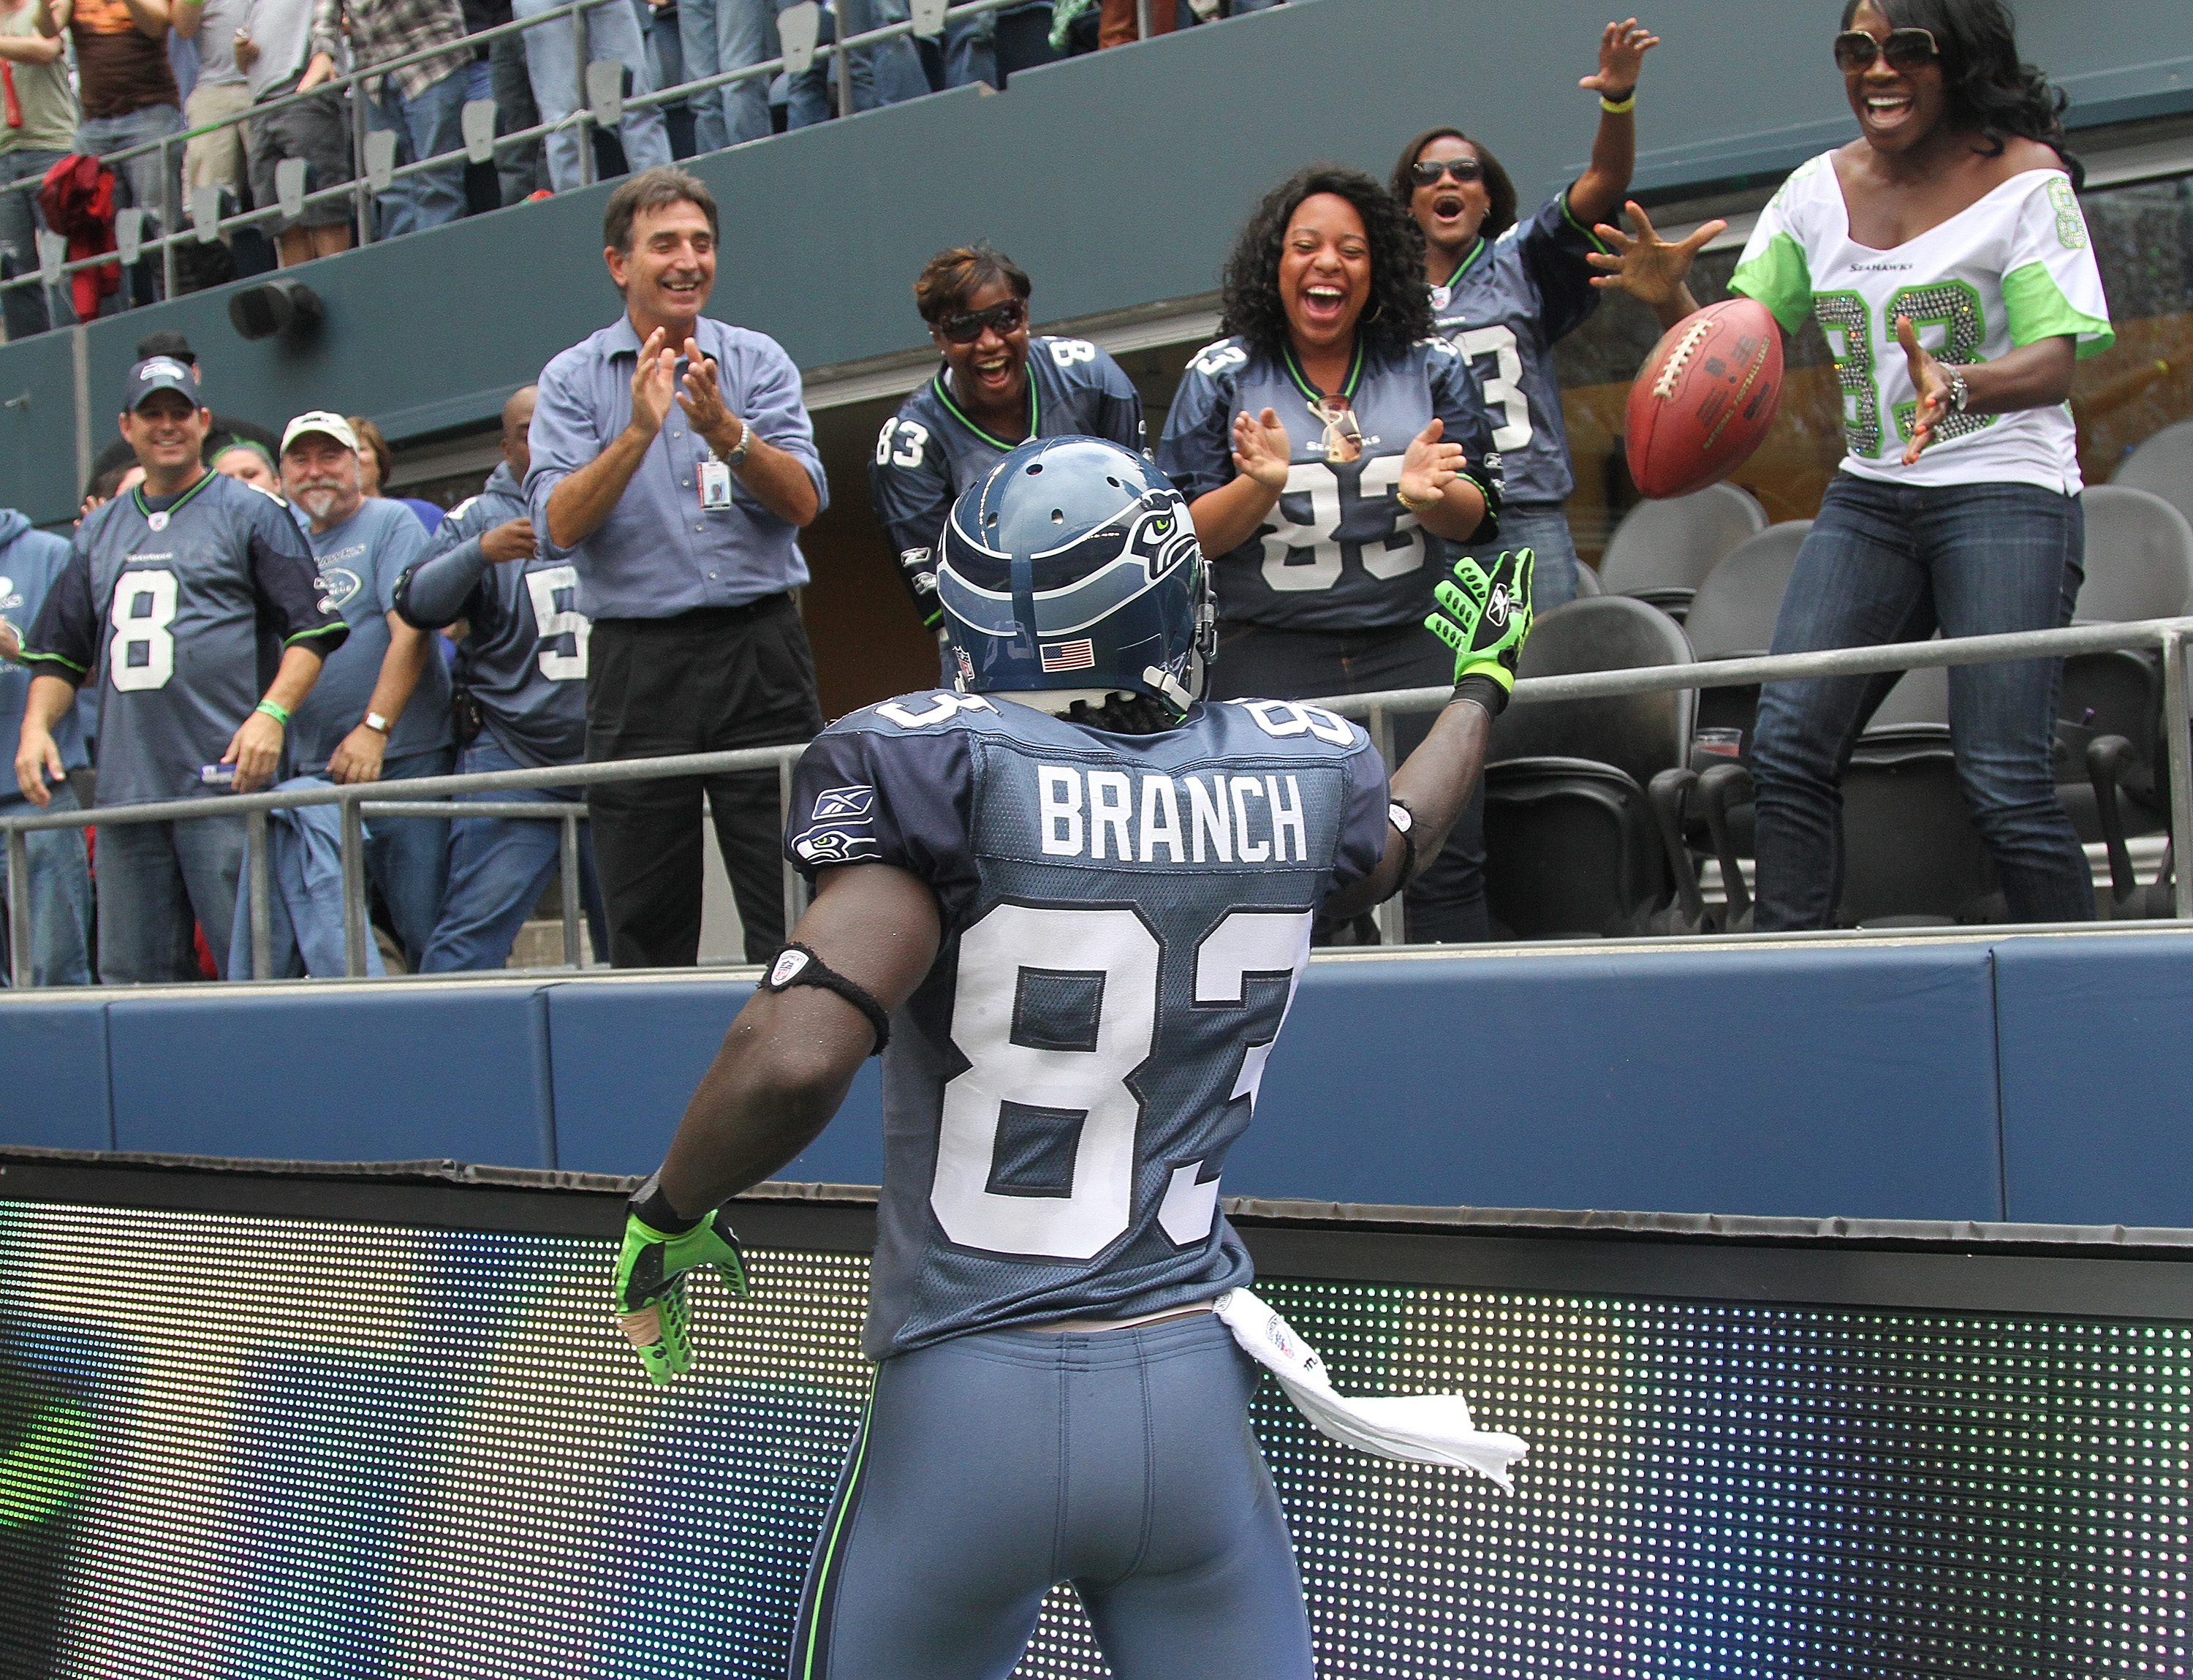 SEATTLE - SEPTEMBER 26:  Wide receiver Deion Branch #83 of the Seattle Seahawks tosses the ball to fans after scoring a touchdown against the San Diego Chargers at Qwest Field on September 26, 2010 in Seattle, Washington. The Seahawks defeated the Charger